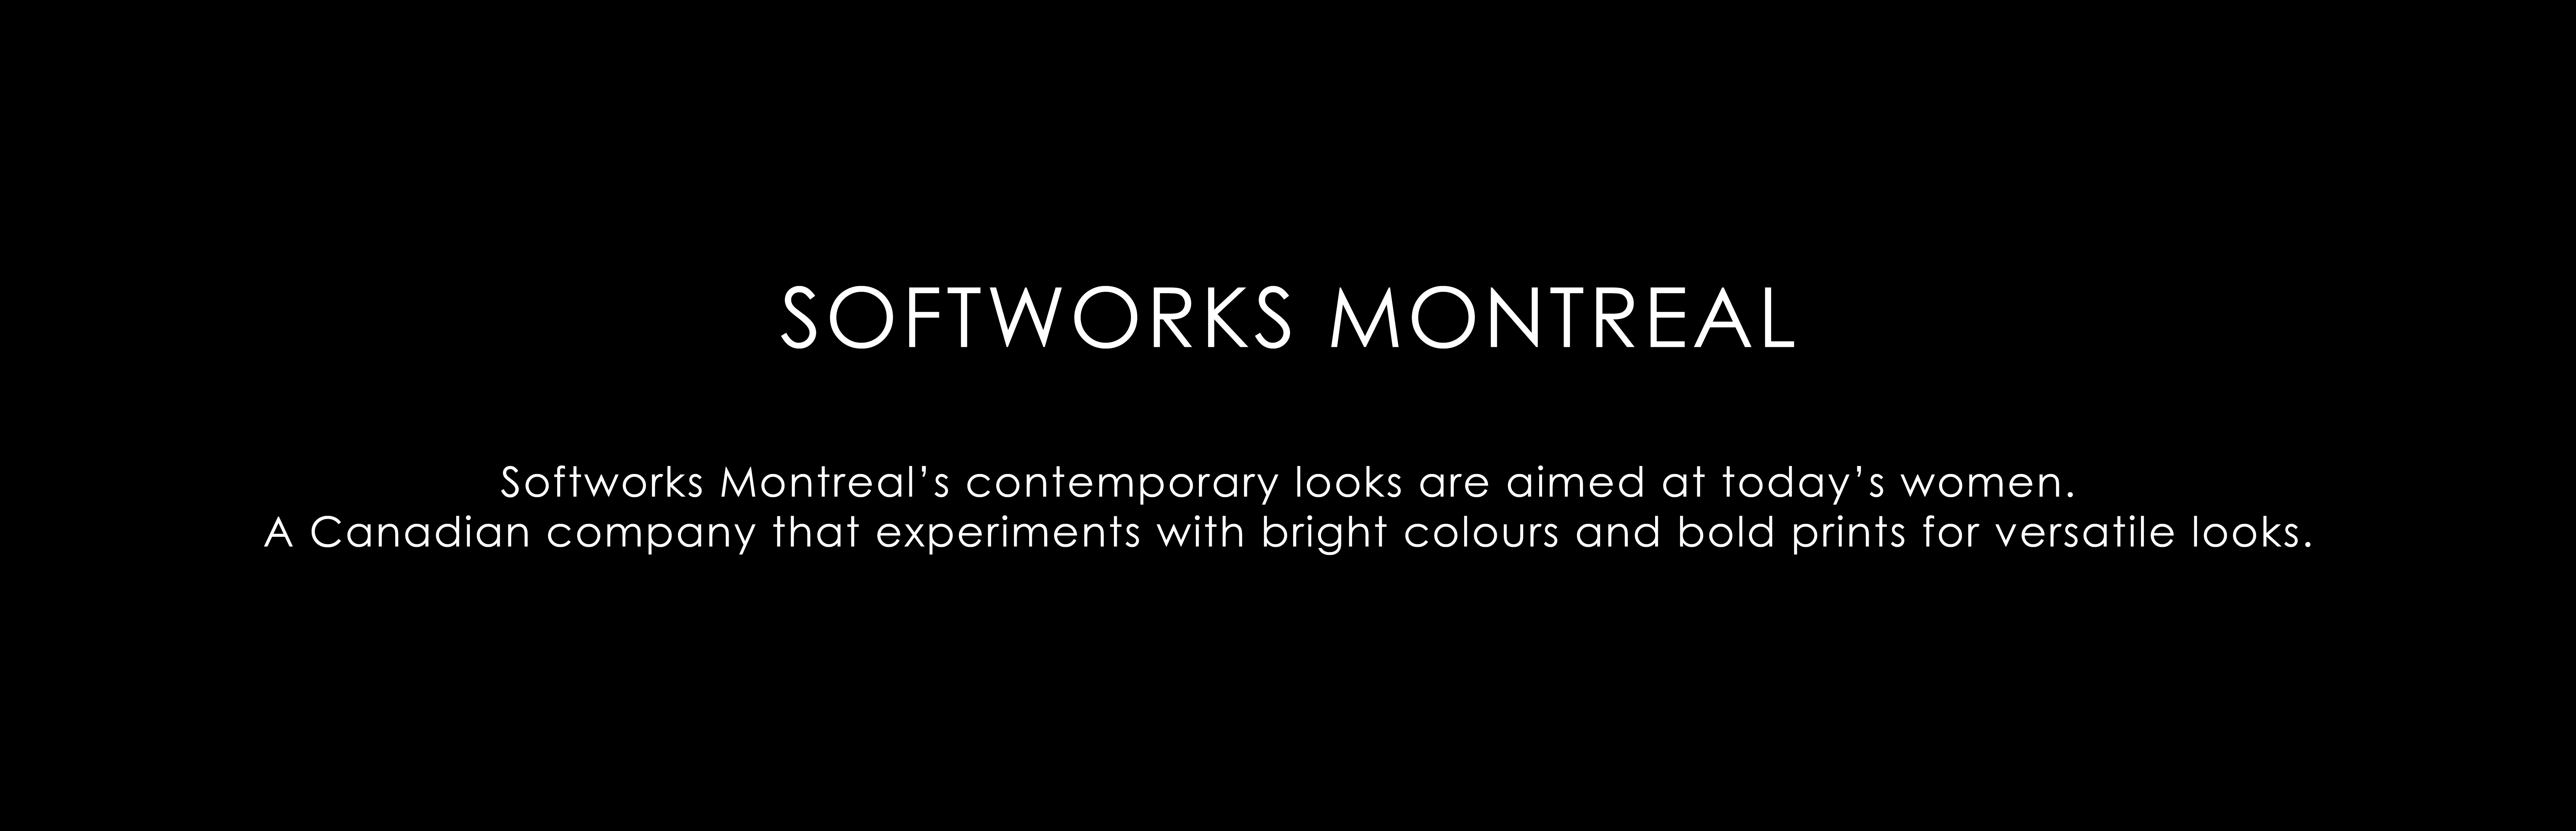 Softworks Montreal